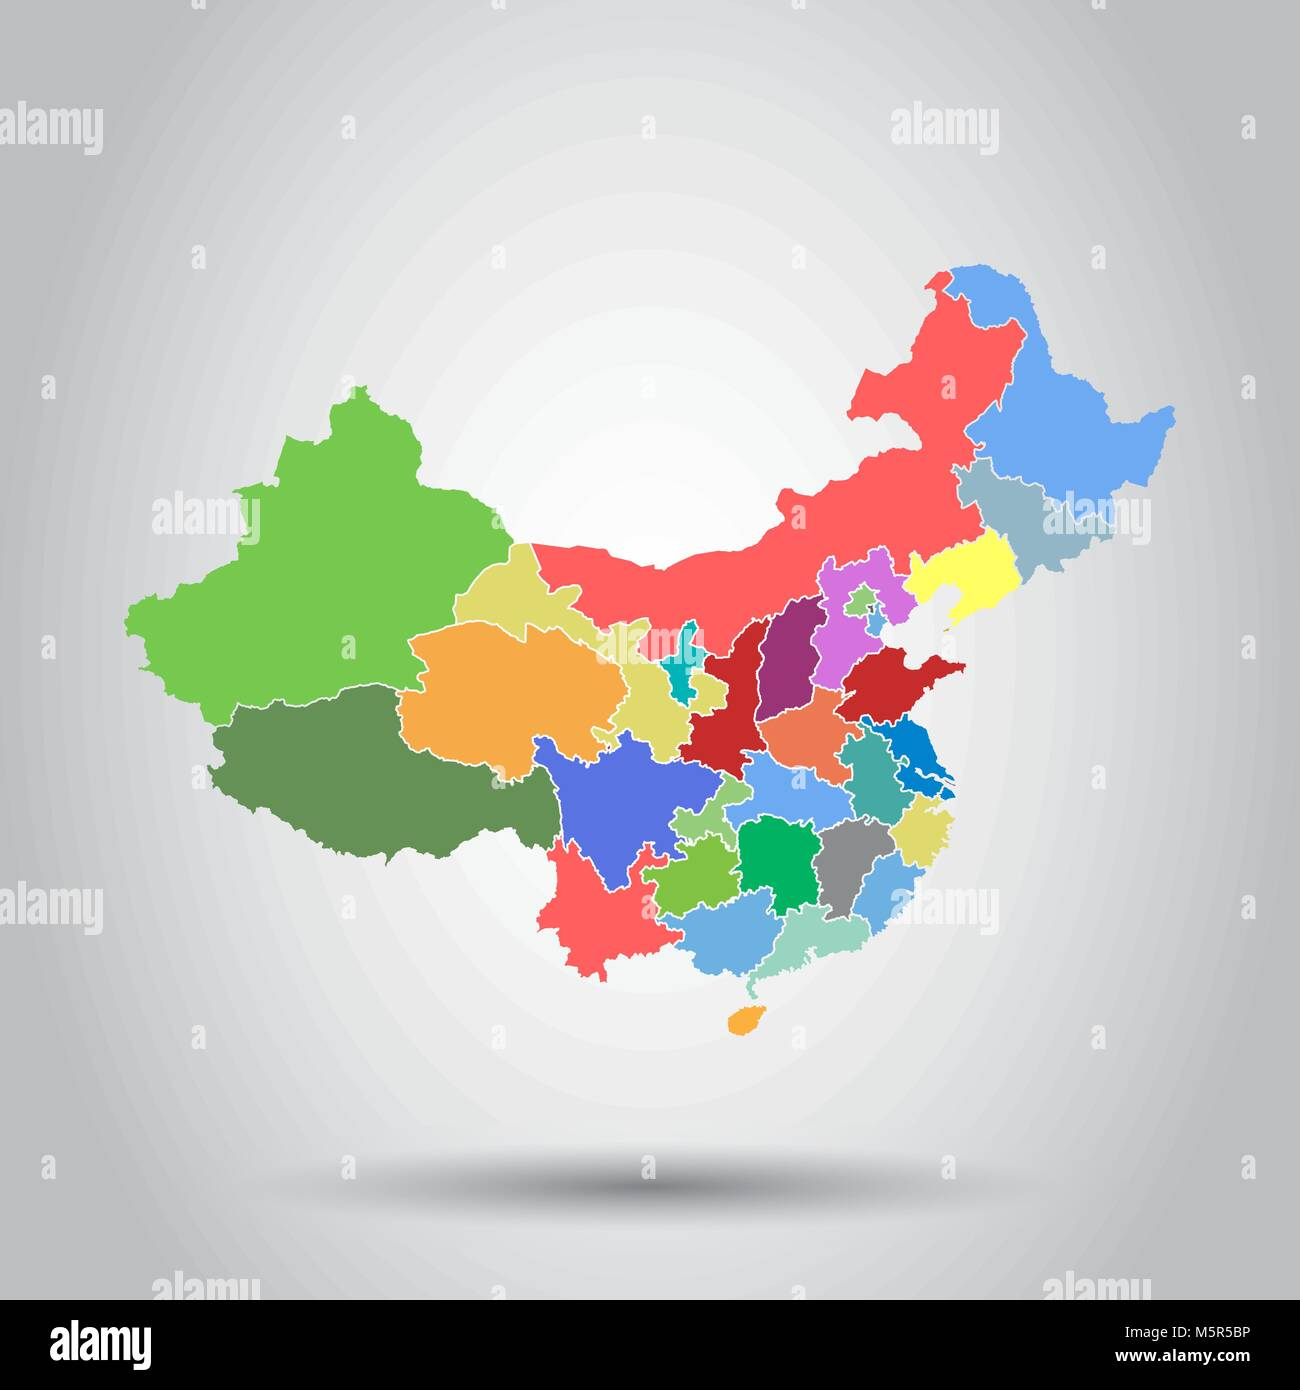 China map with province region. Flat vector illustration on isolated background - Stock Vector